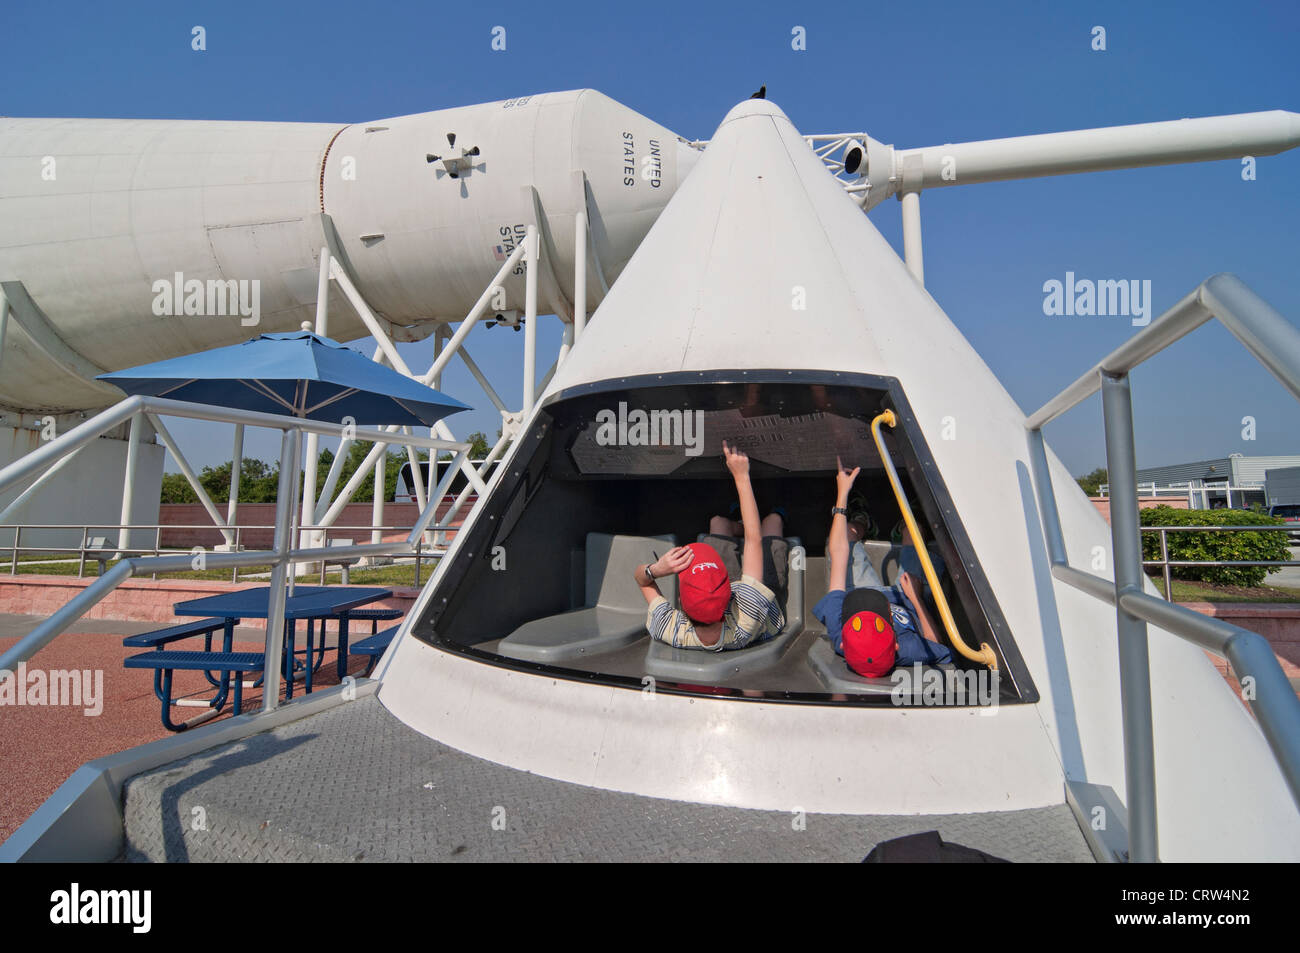 apollo 11 movie kennedy space center - photo #36